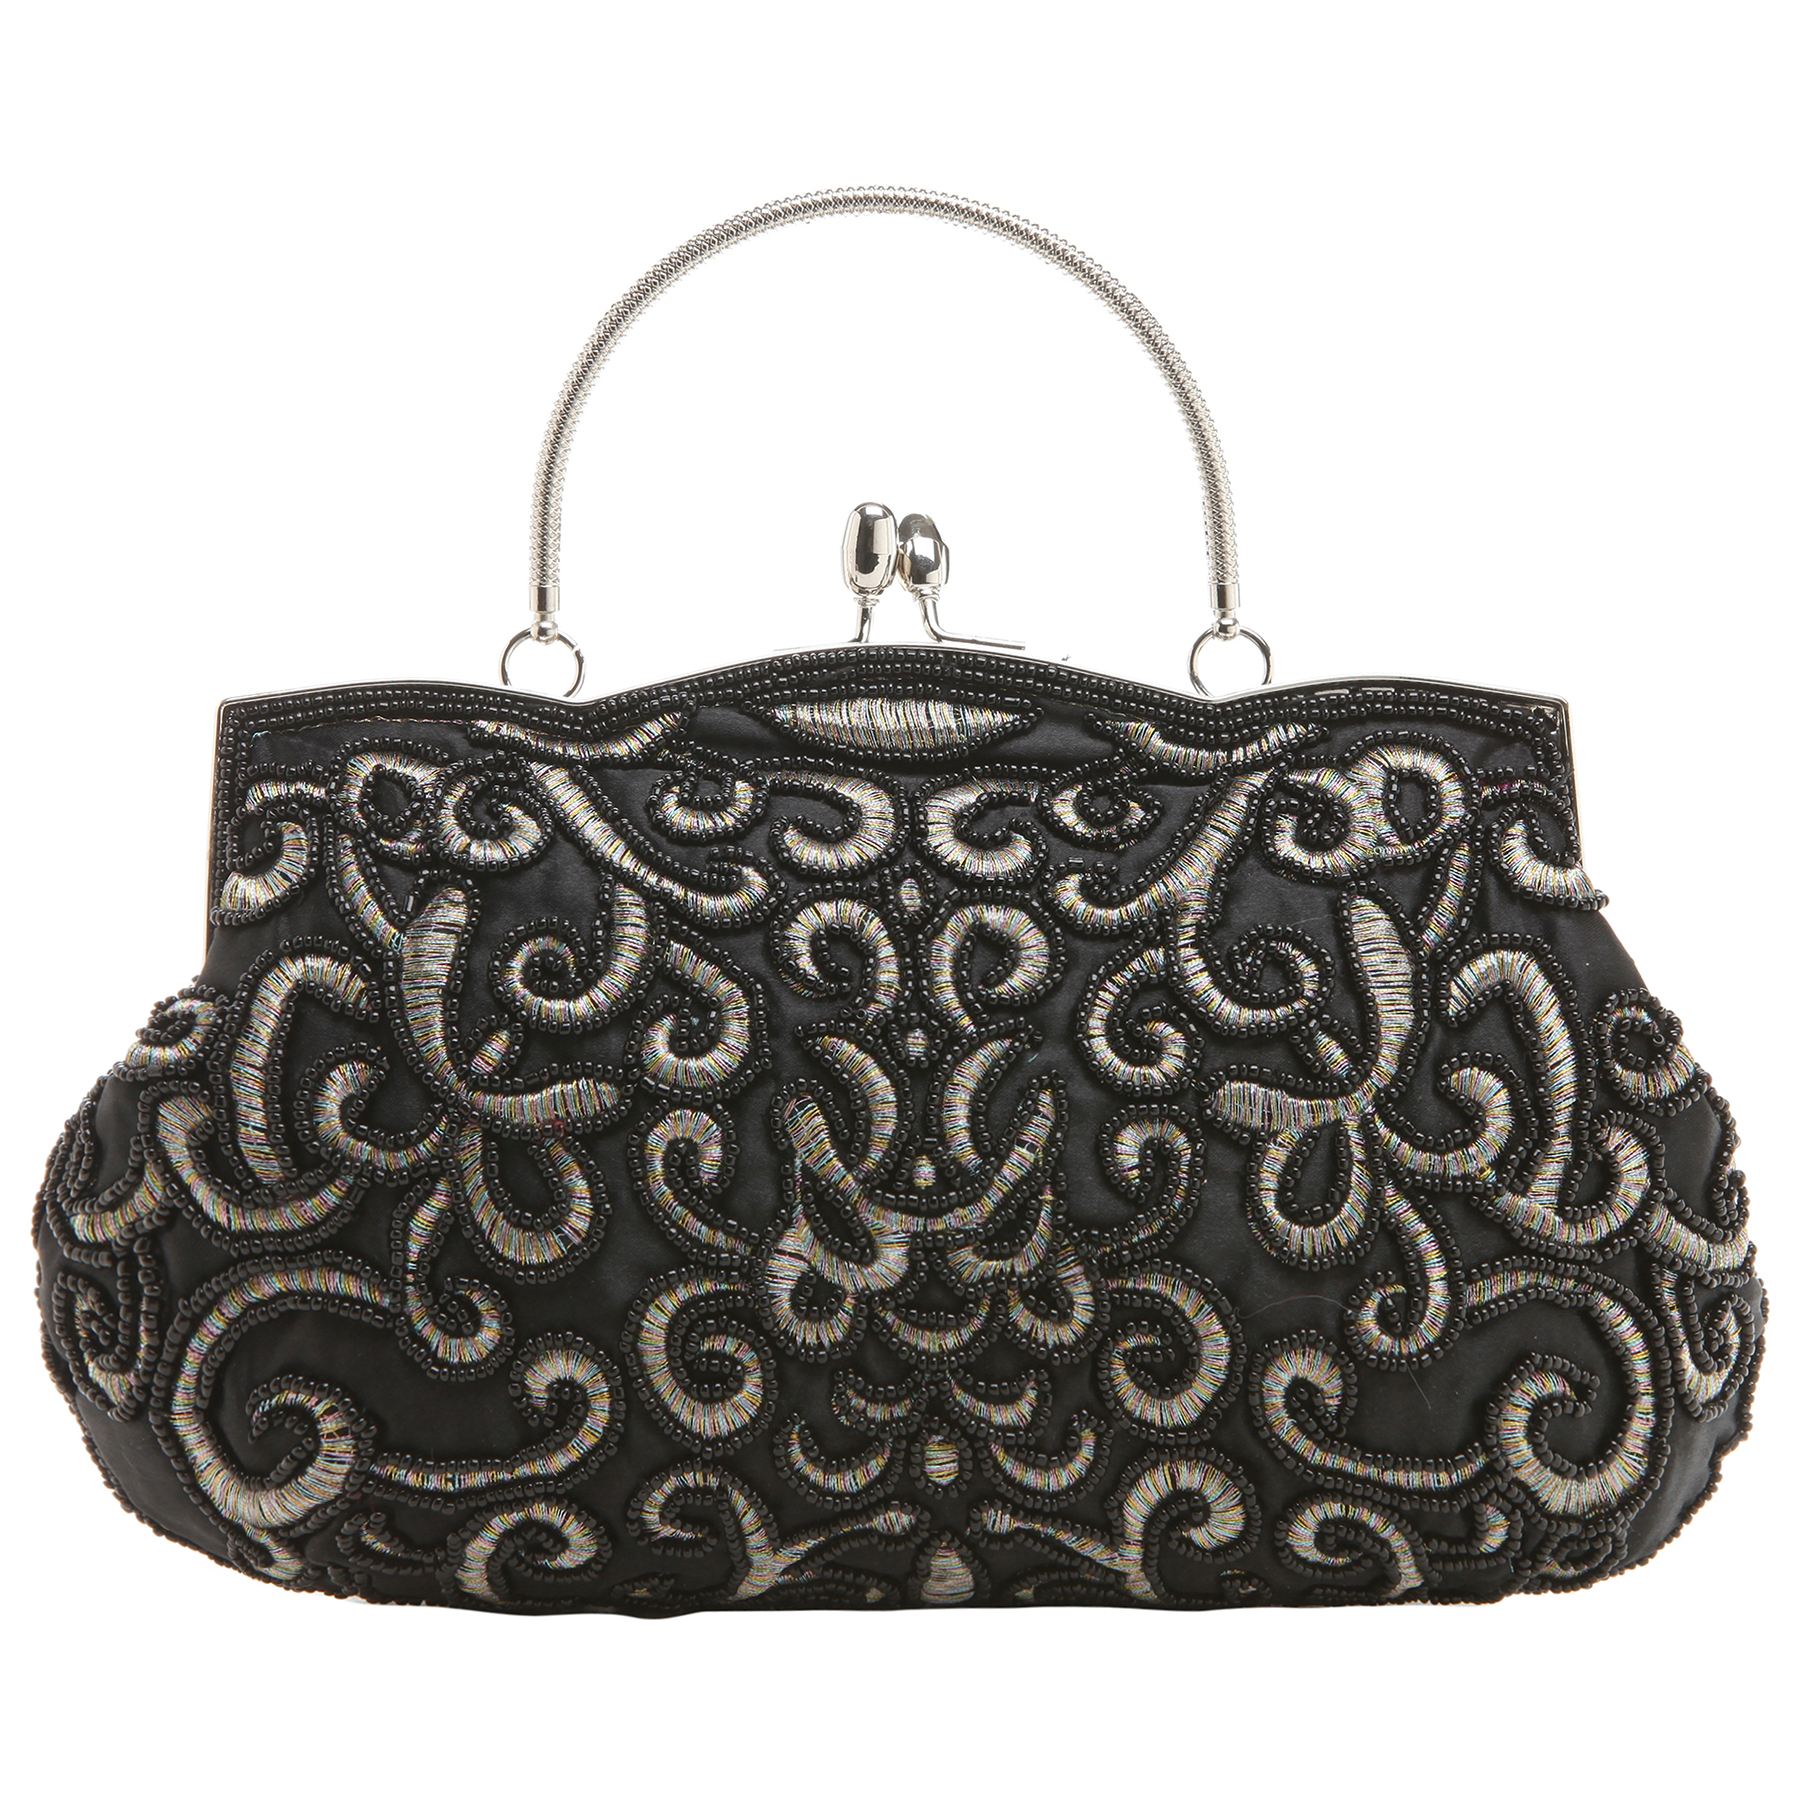 ADELE Black Embroidered Evening Handbag front